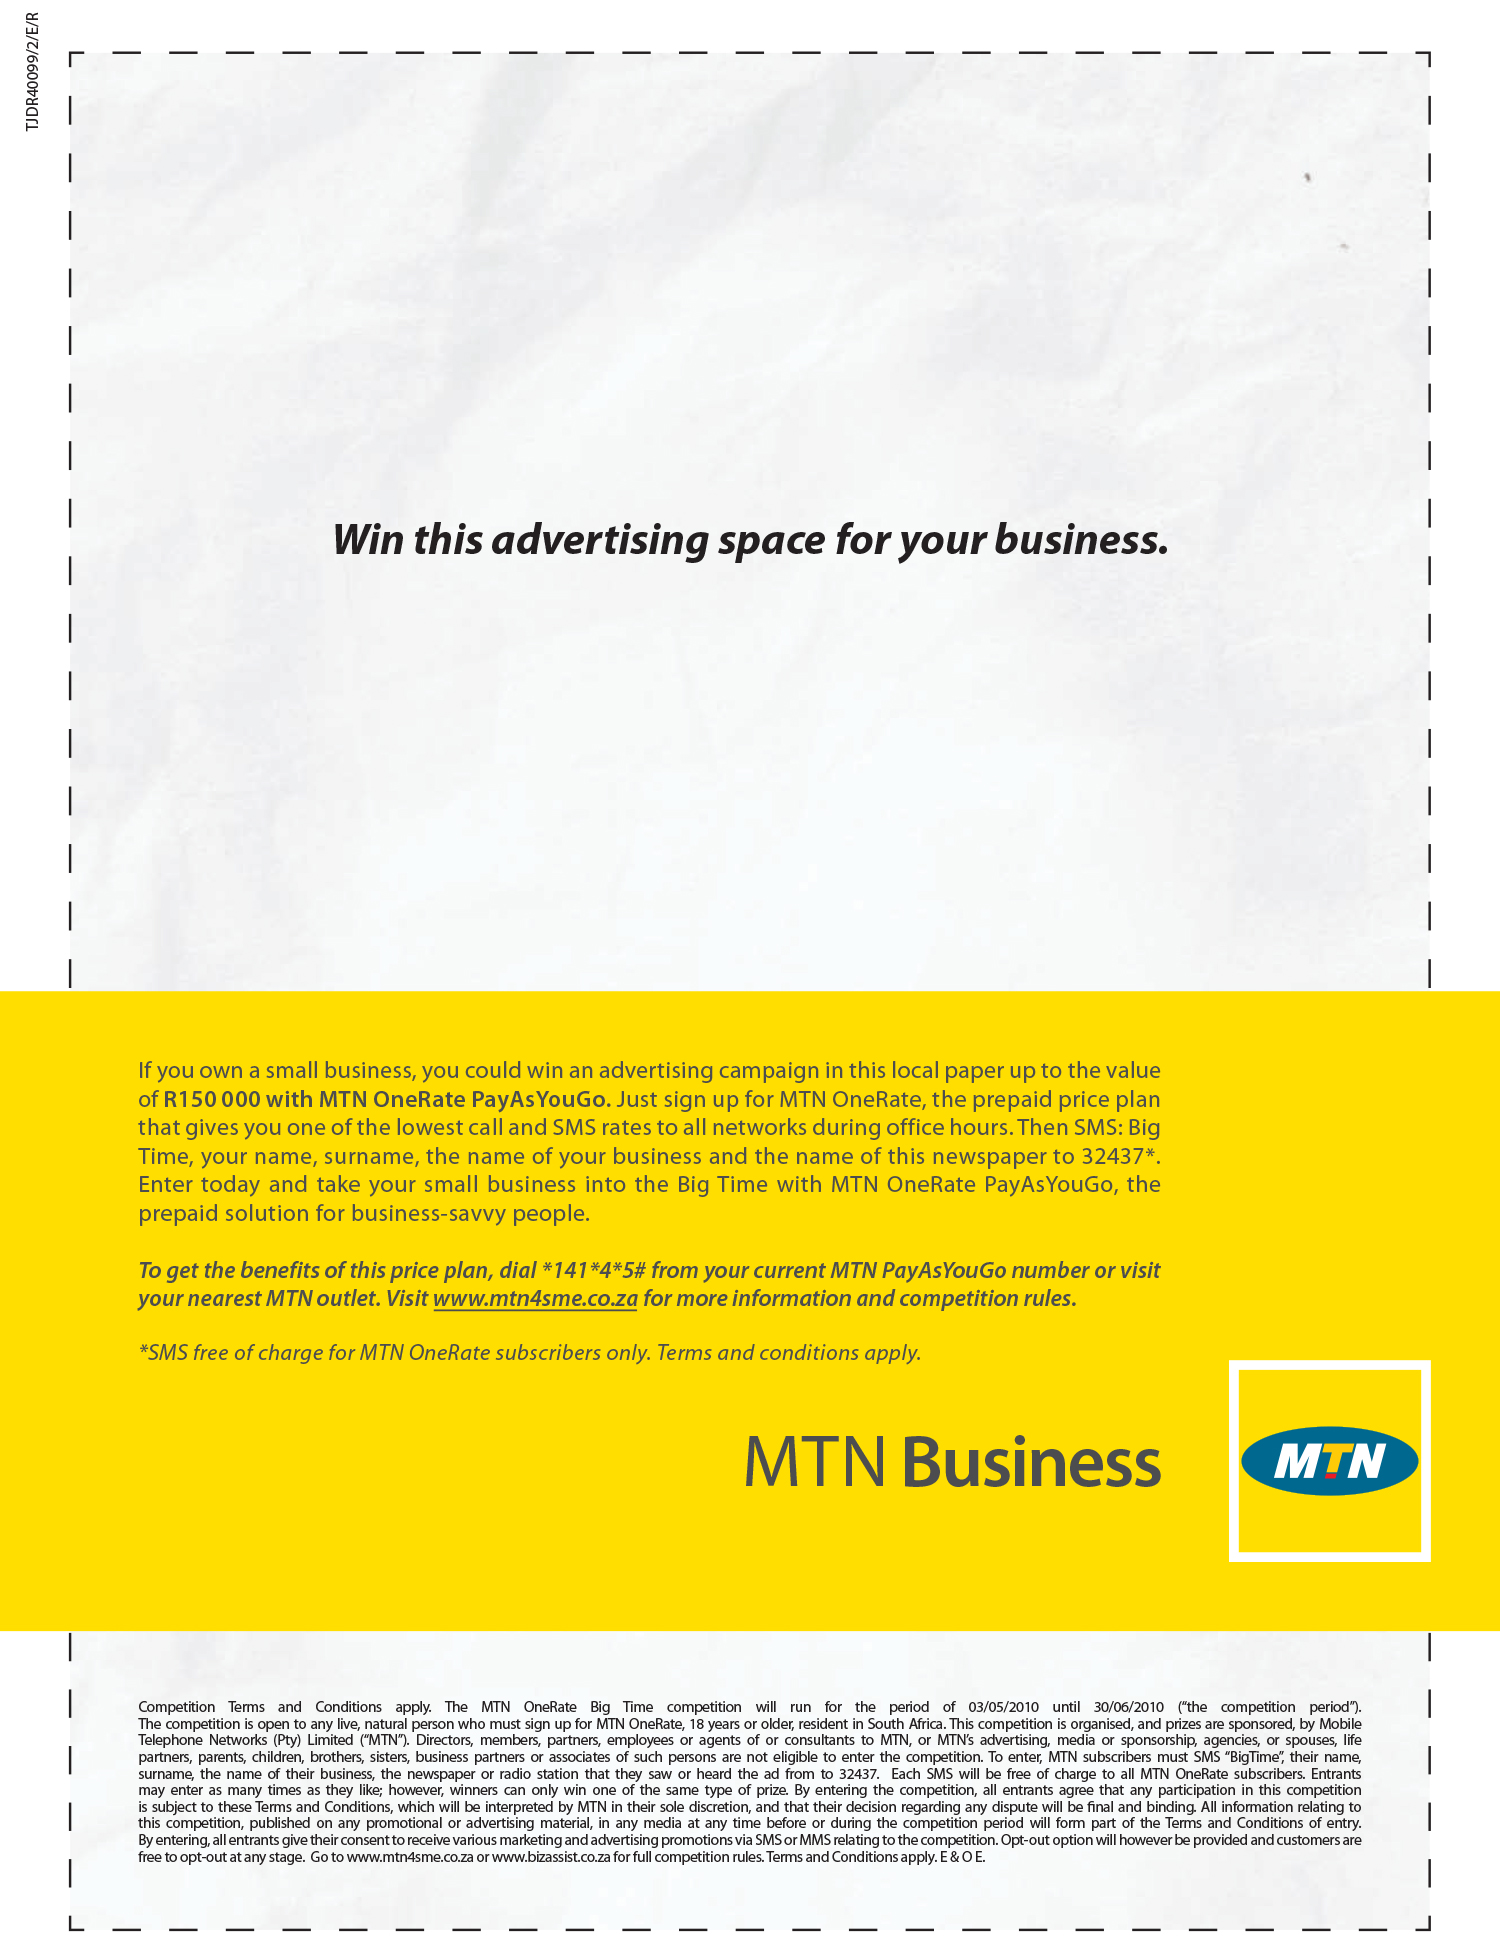 mtn business plan